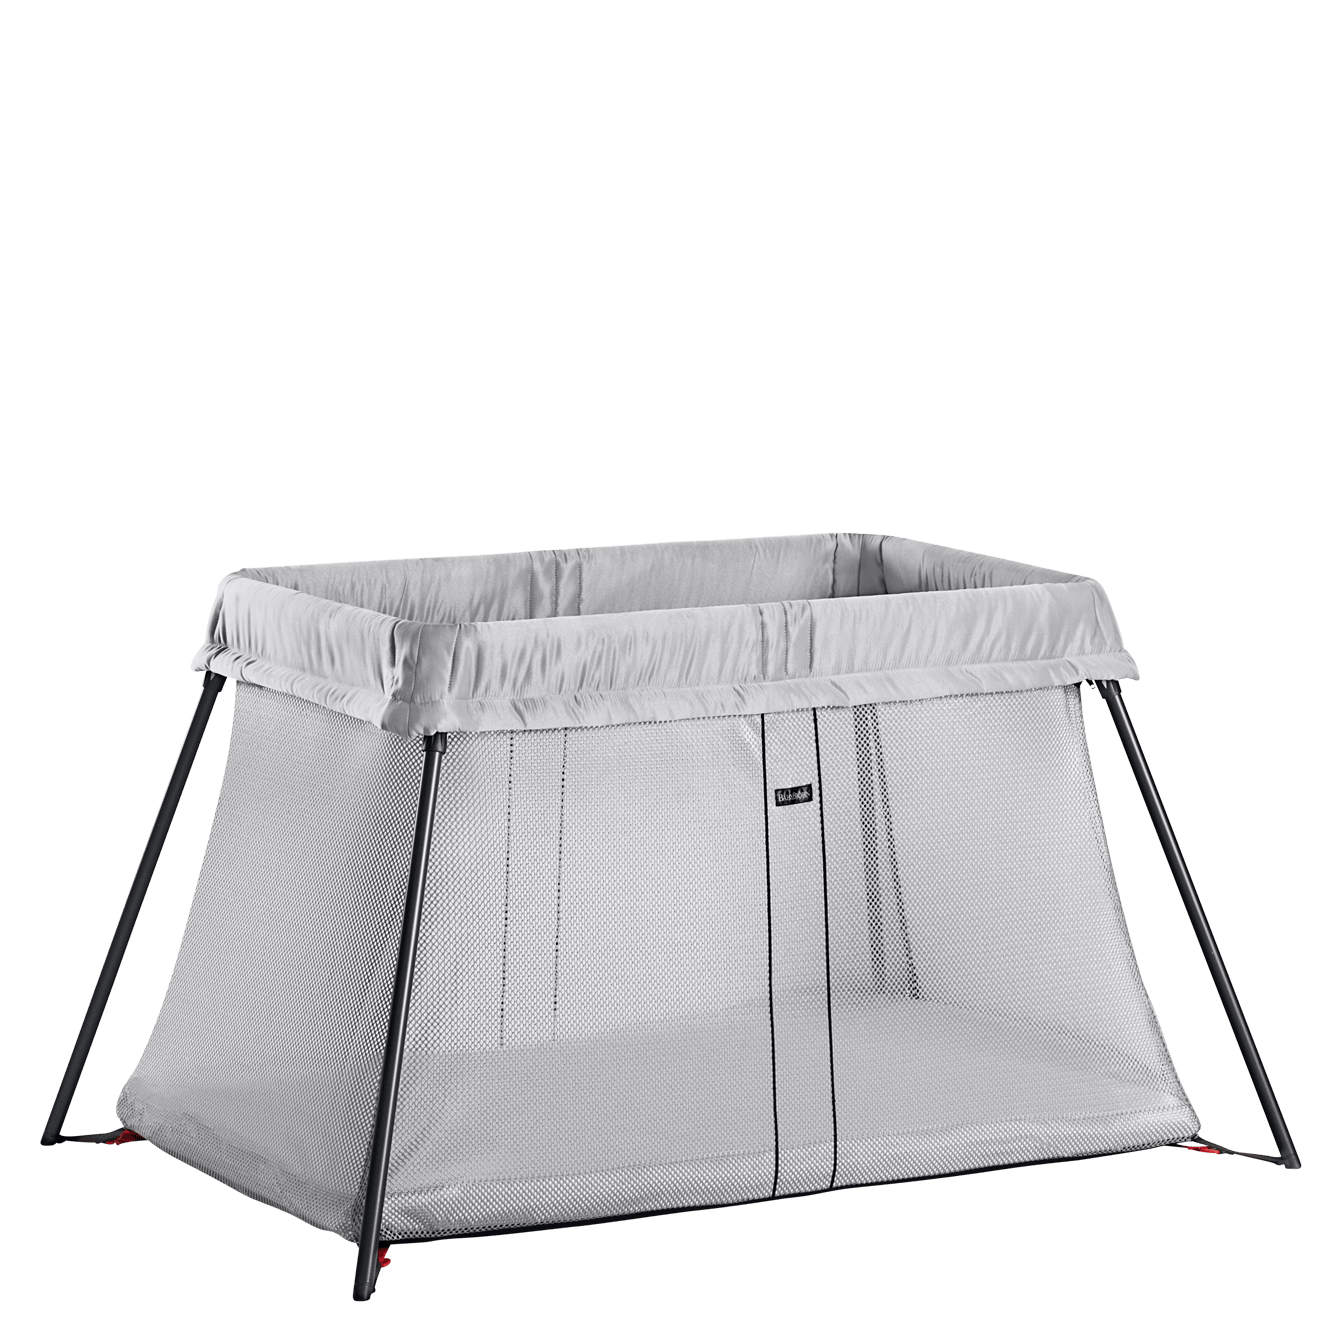 BABYBJÖRN Travel Crib Light in silver, easy to take with you and simple to set up and fold up.